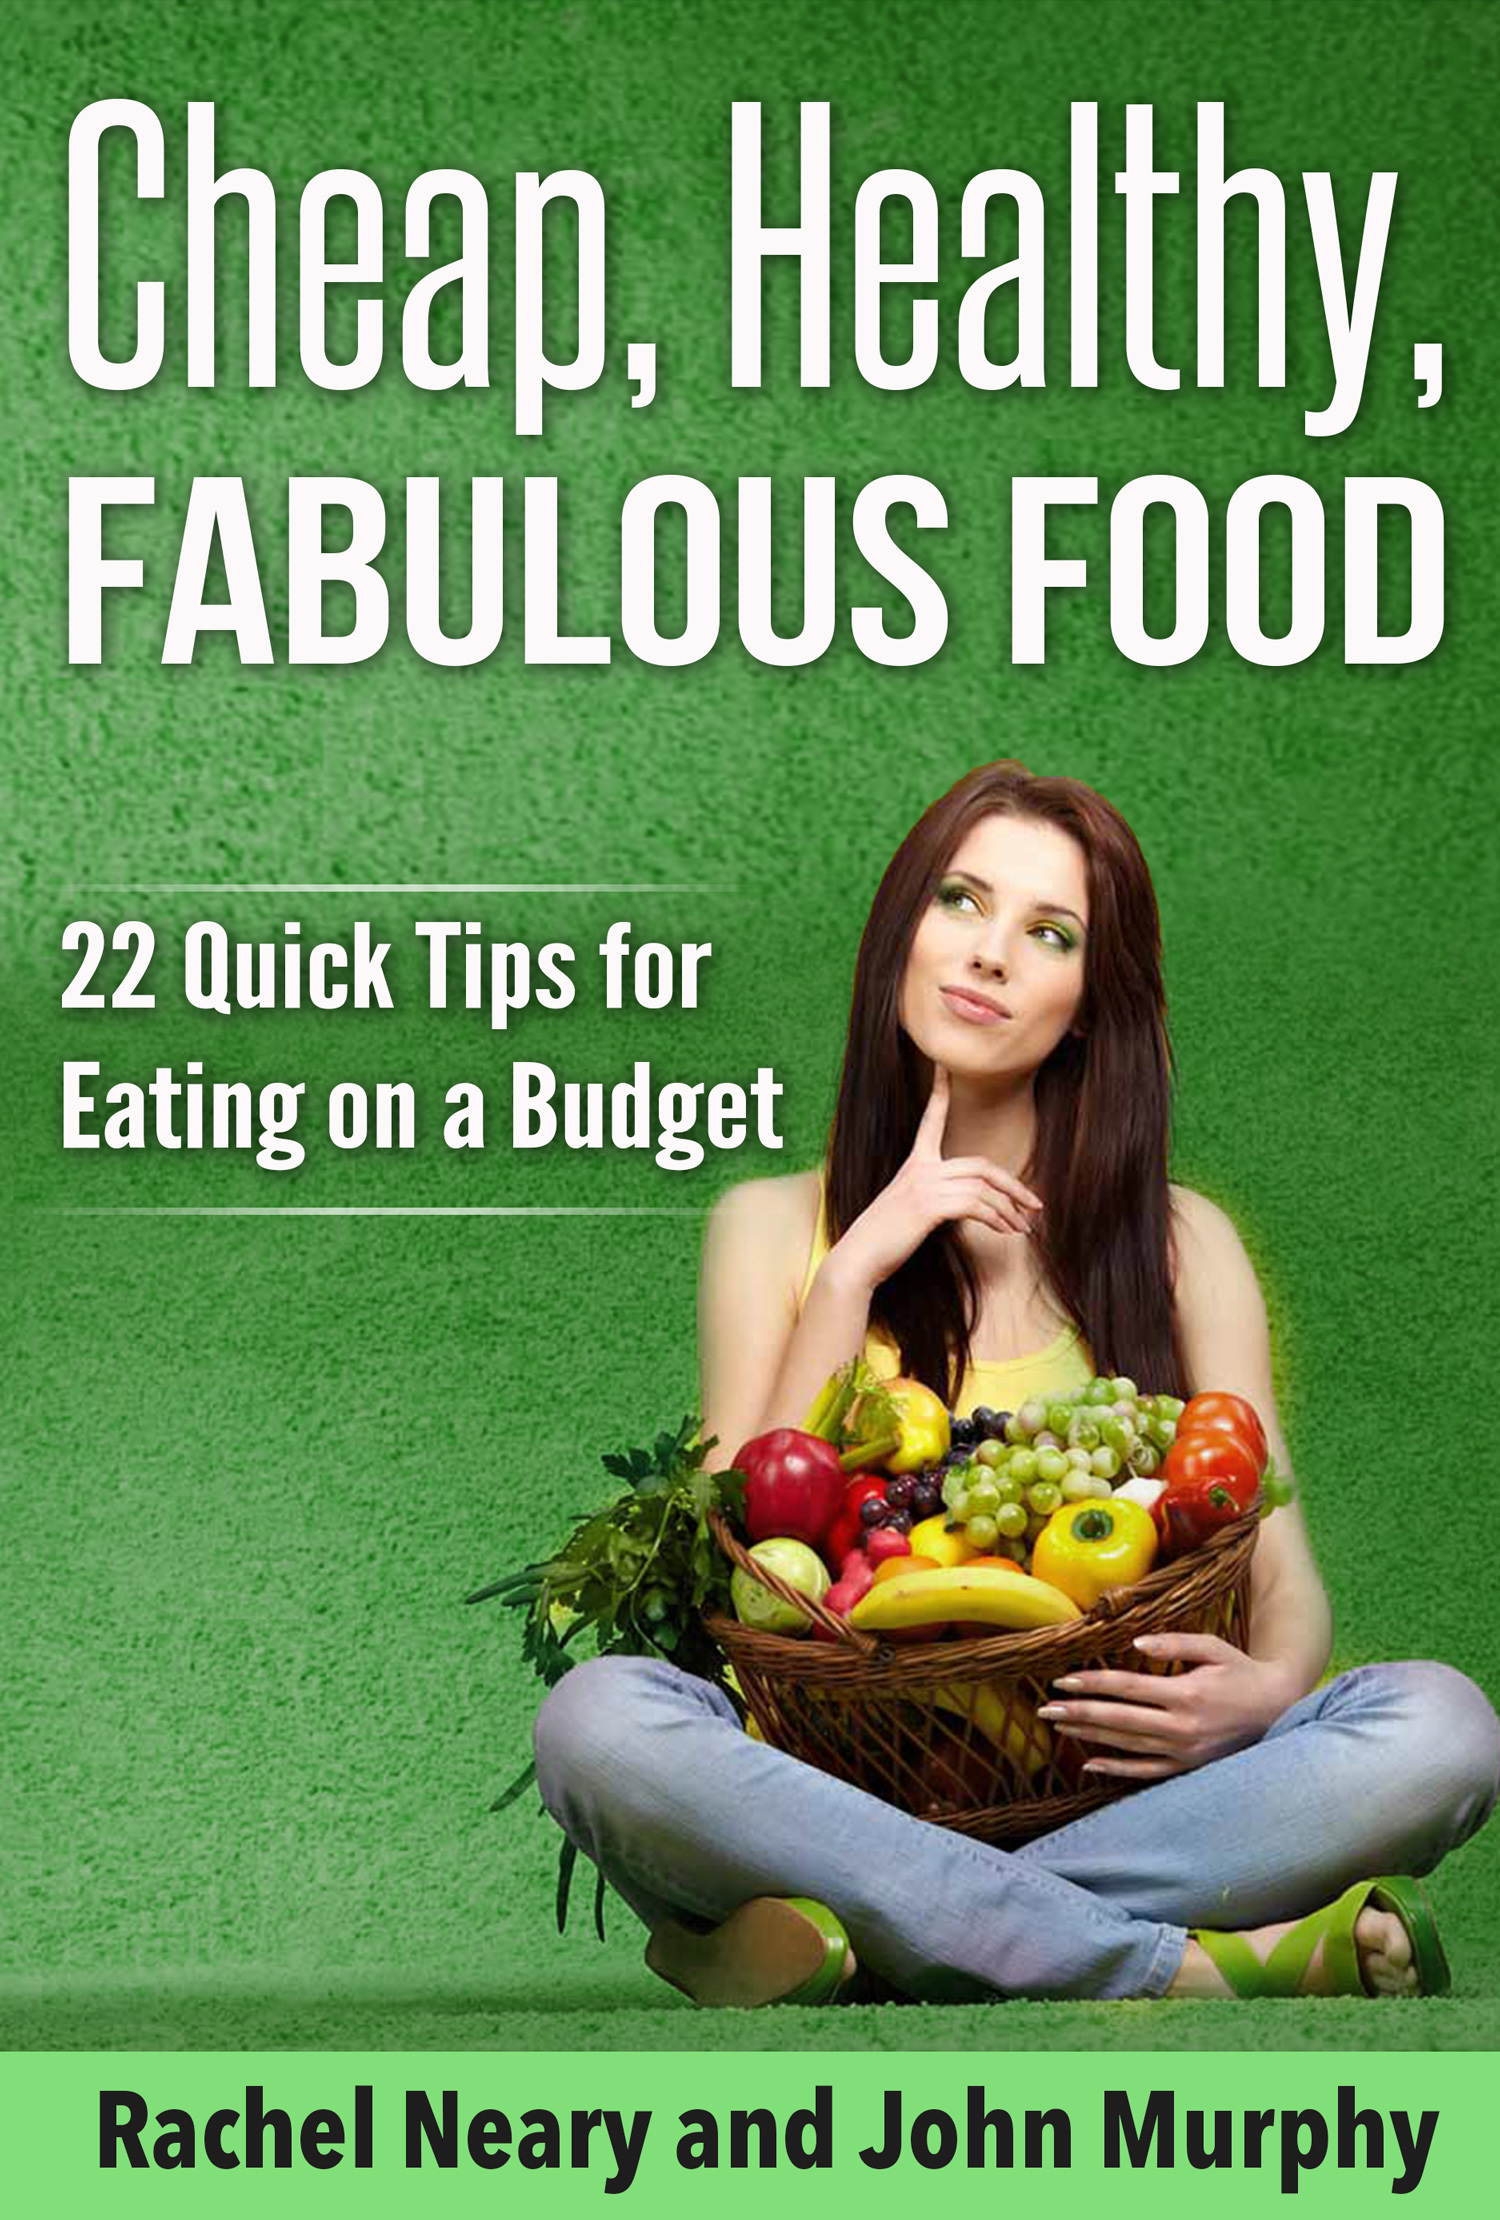 Cheap, Healthy, Fabulous Food: 22 Quick Tips for Eating on a Budget John Murphy